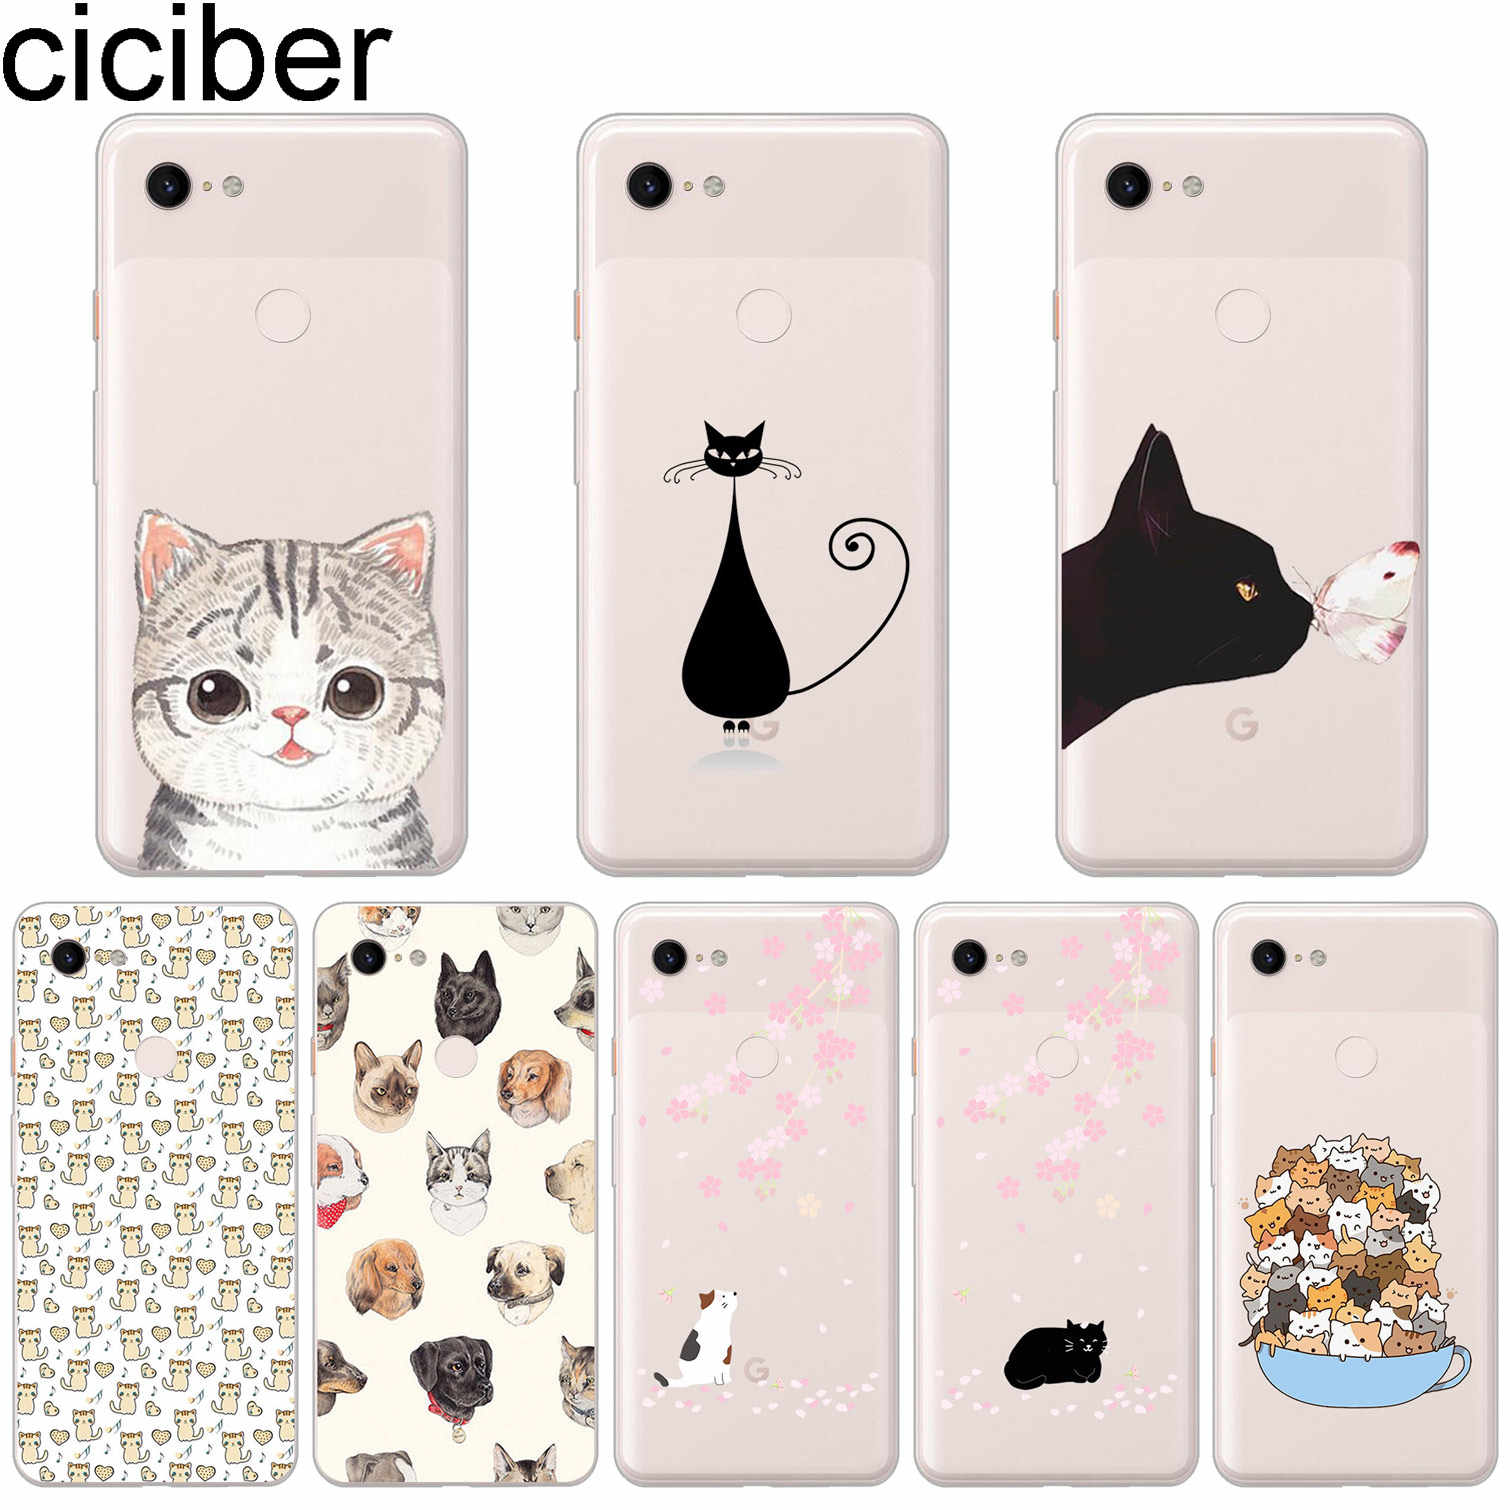 ciciber Cat Flower Soft Silicone Phone Case For Google Pixel 3 2 XL TPU Back Cover for Pixel 3XL 2XL Coque Fundas Capa Shell